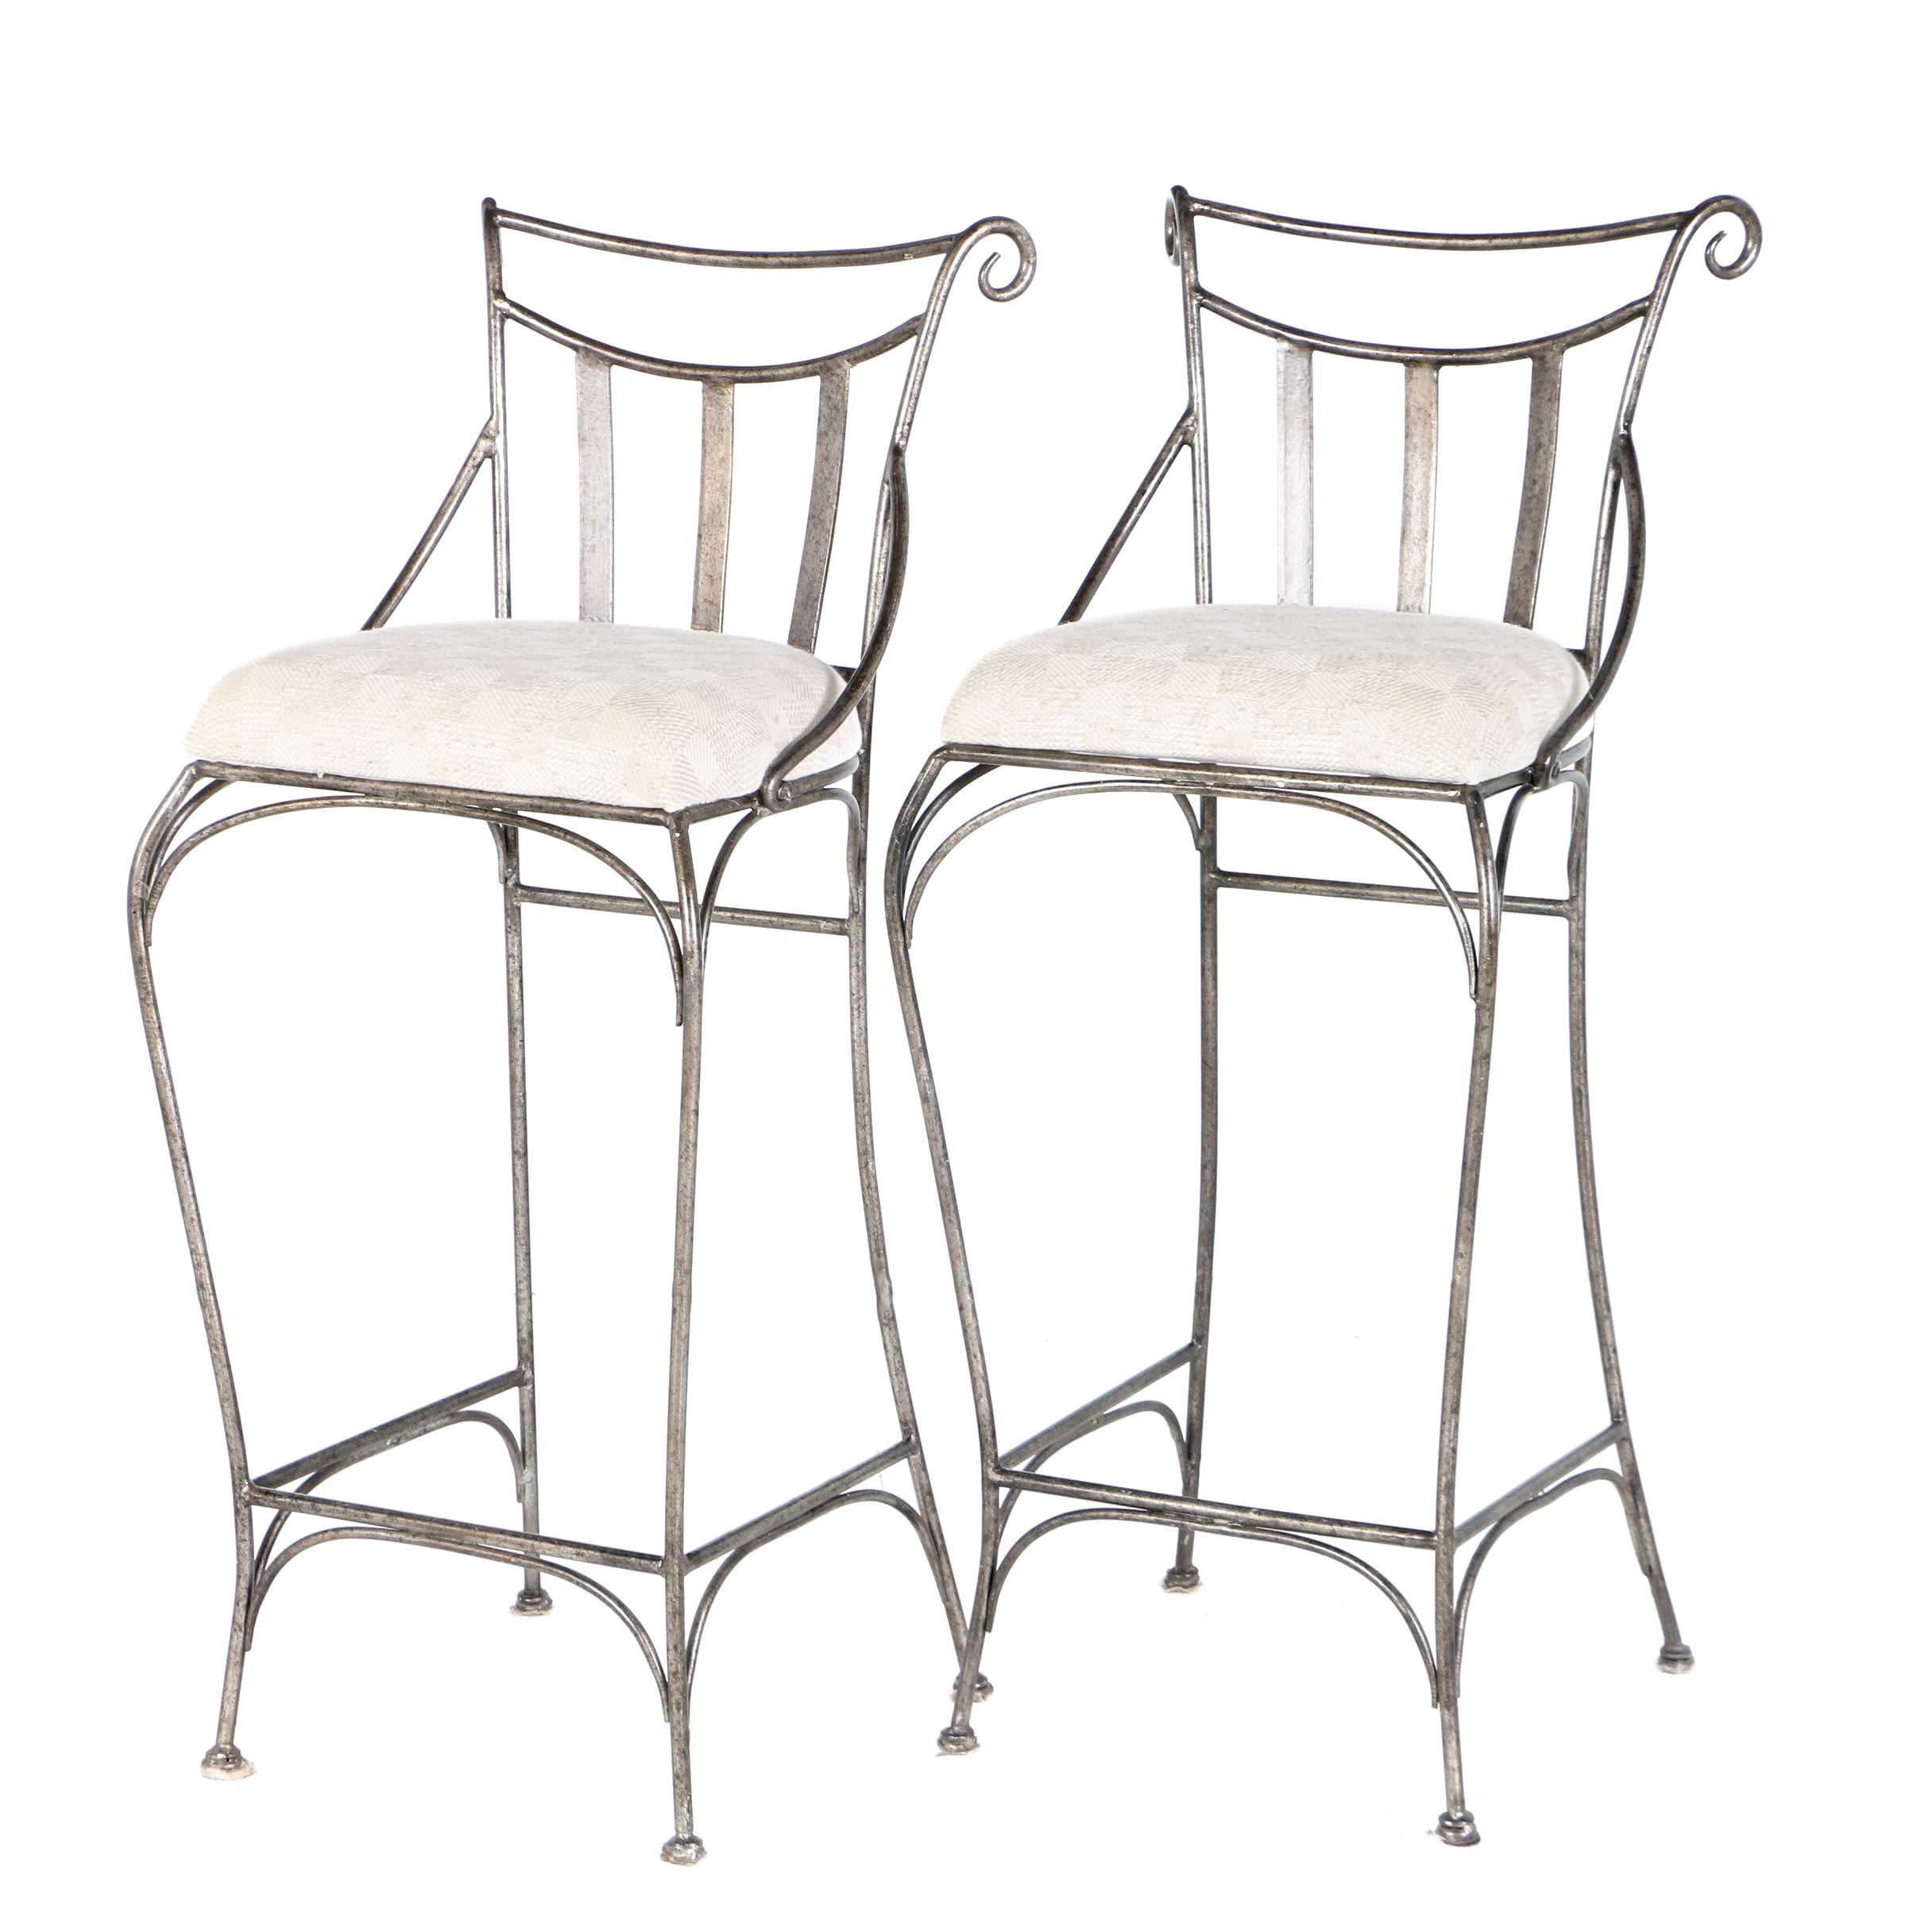 Pair of Contemporary Wire Barstools by Pt. Hakaya Indomas